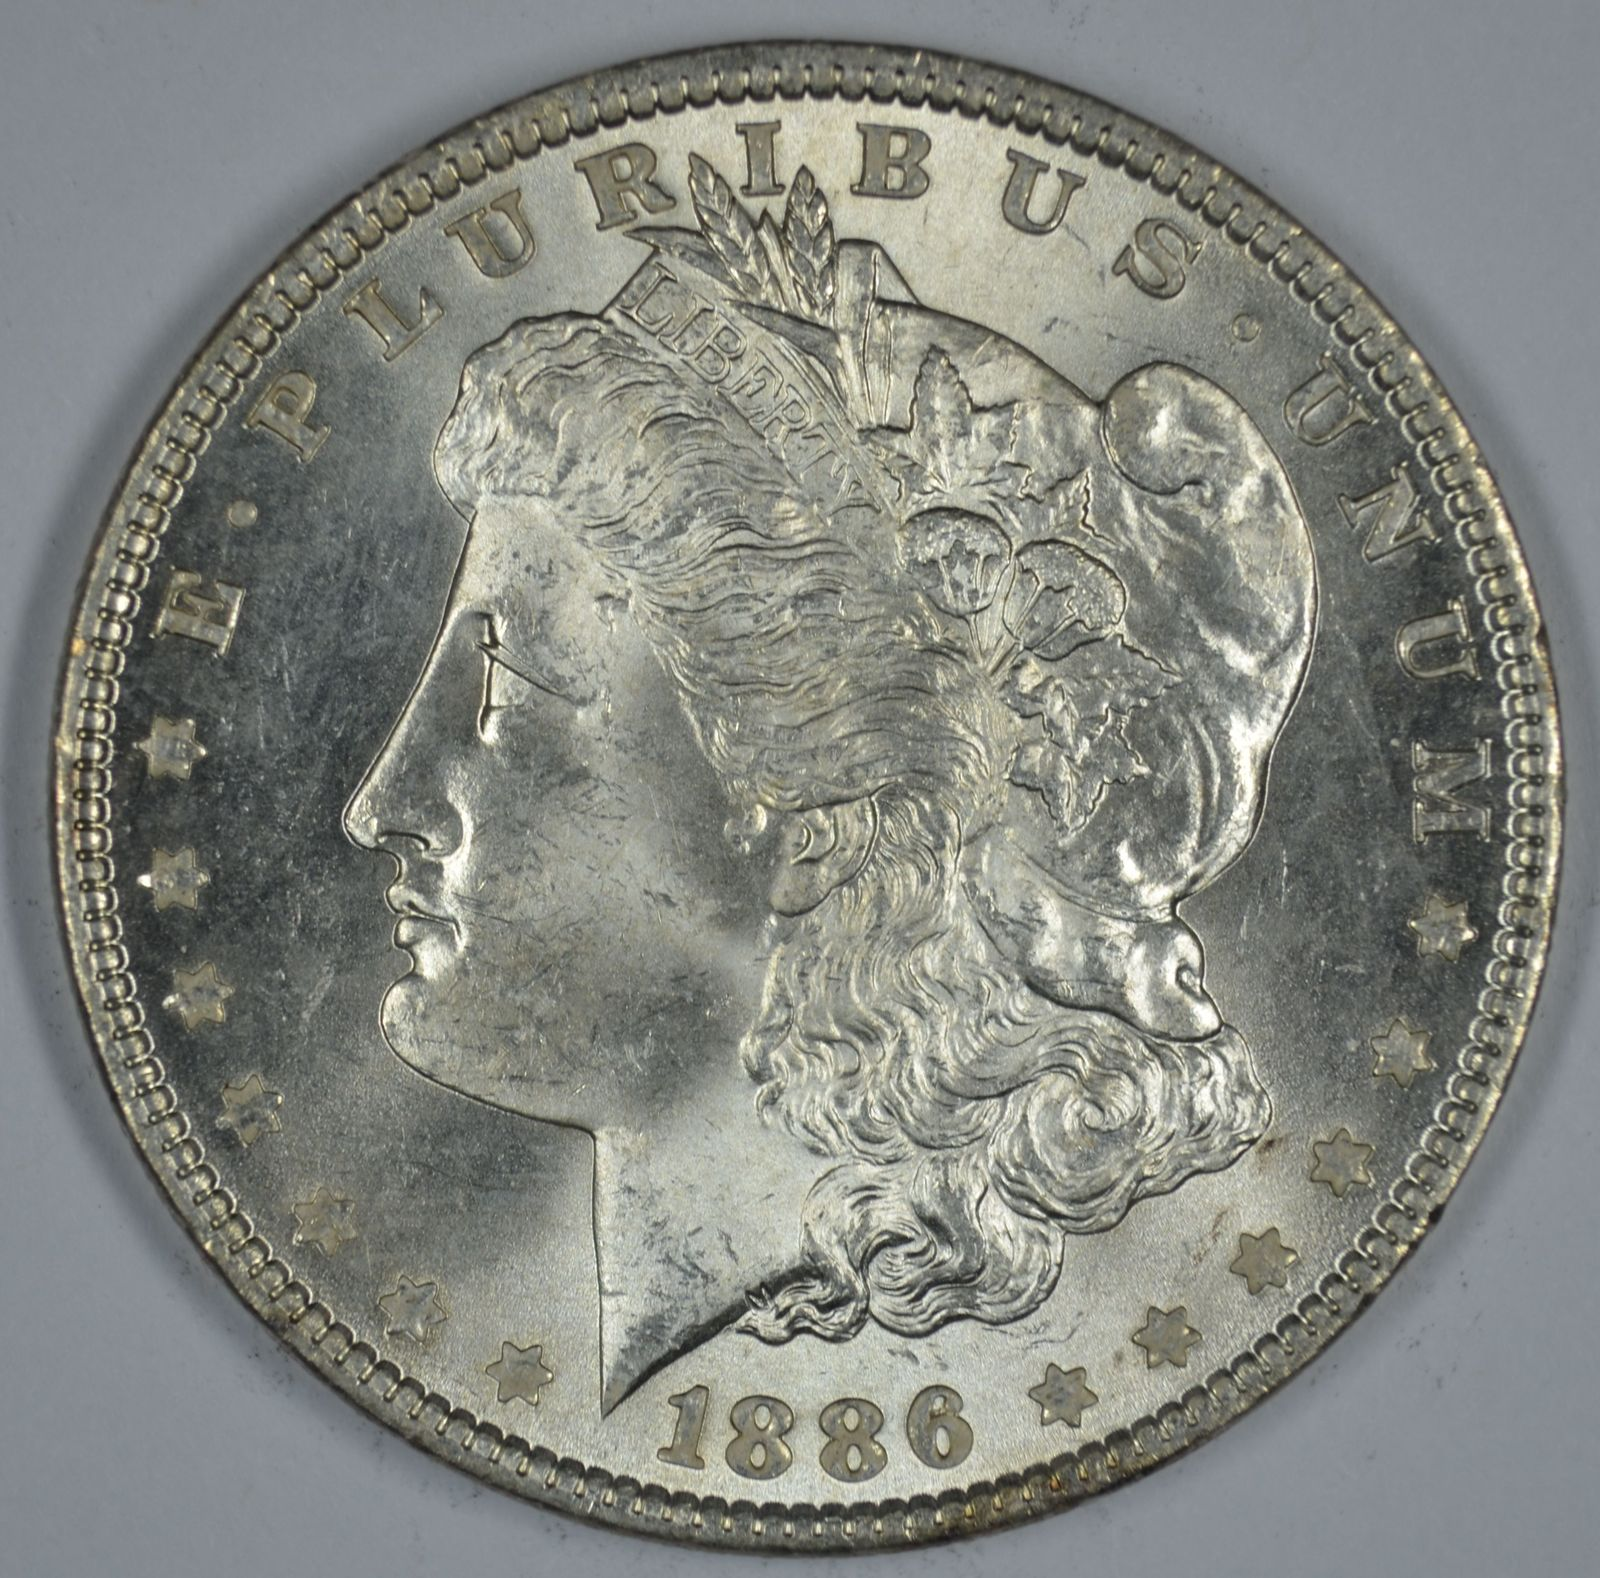 Primary image for 1886 P Morgan silver dollar BU details